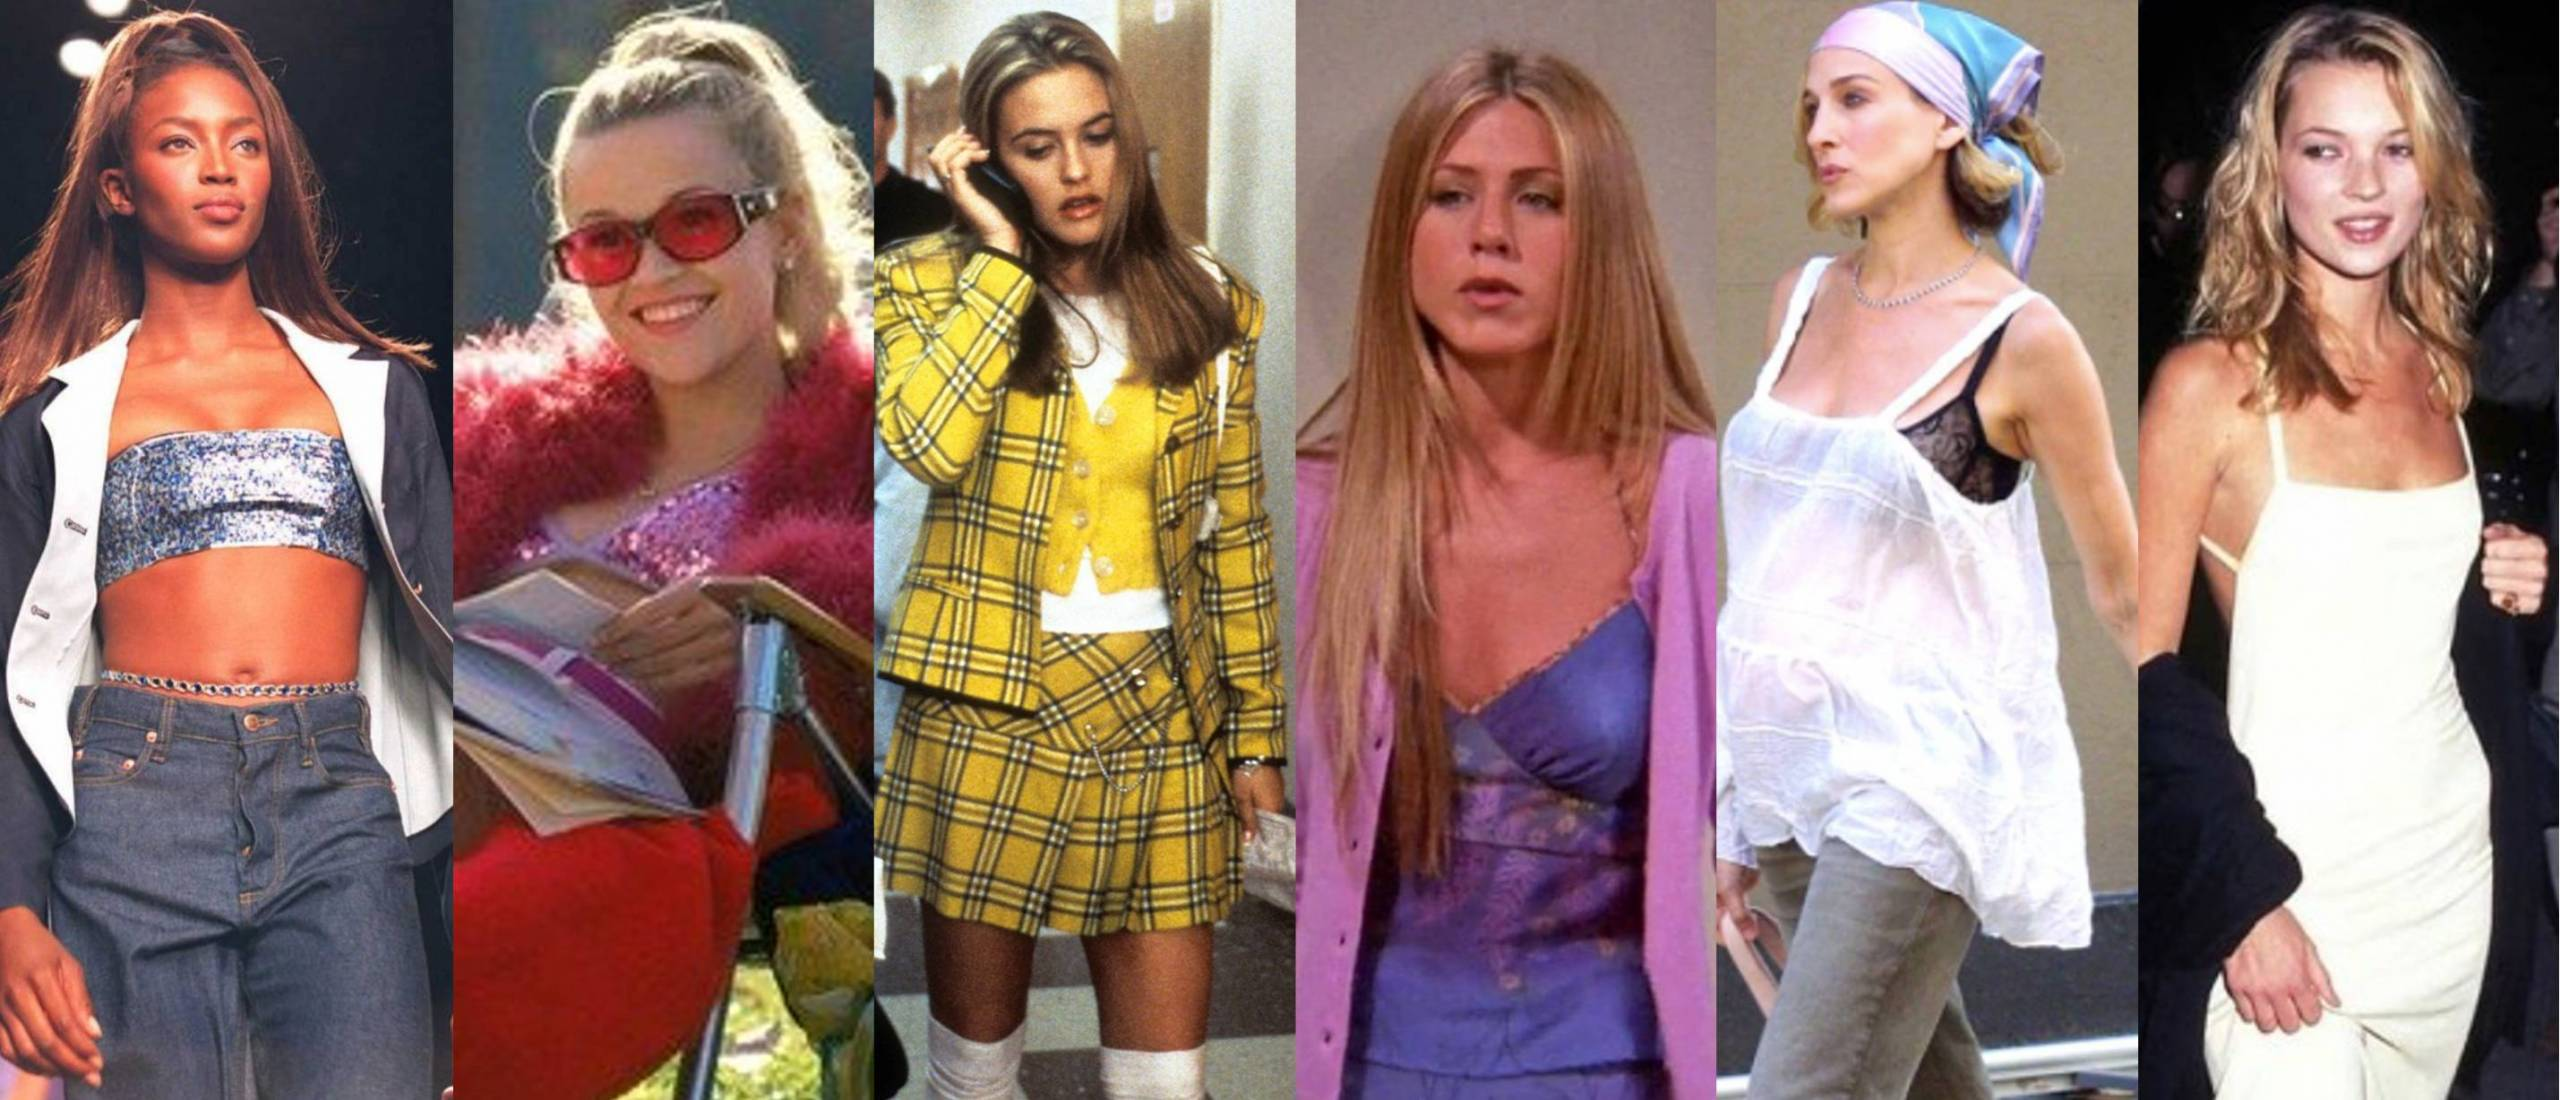 Why Are We So Obsessed With 90s Fashion? A Therapist Weighs In